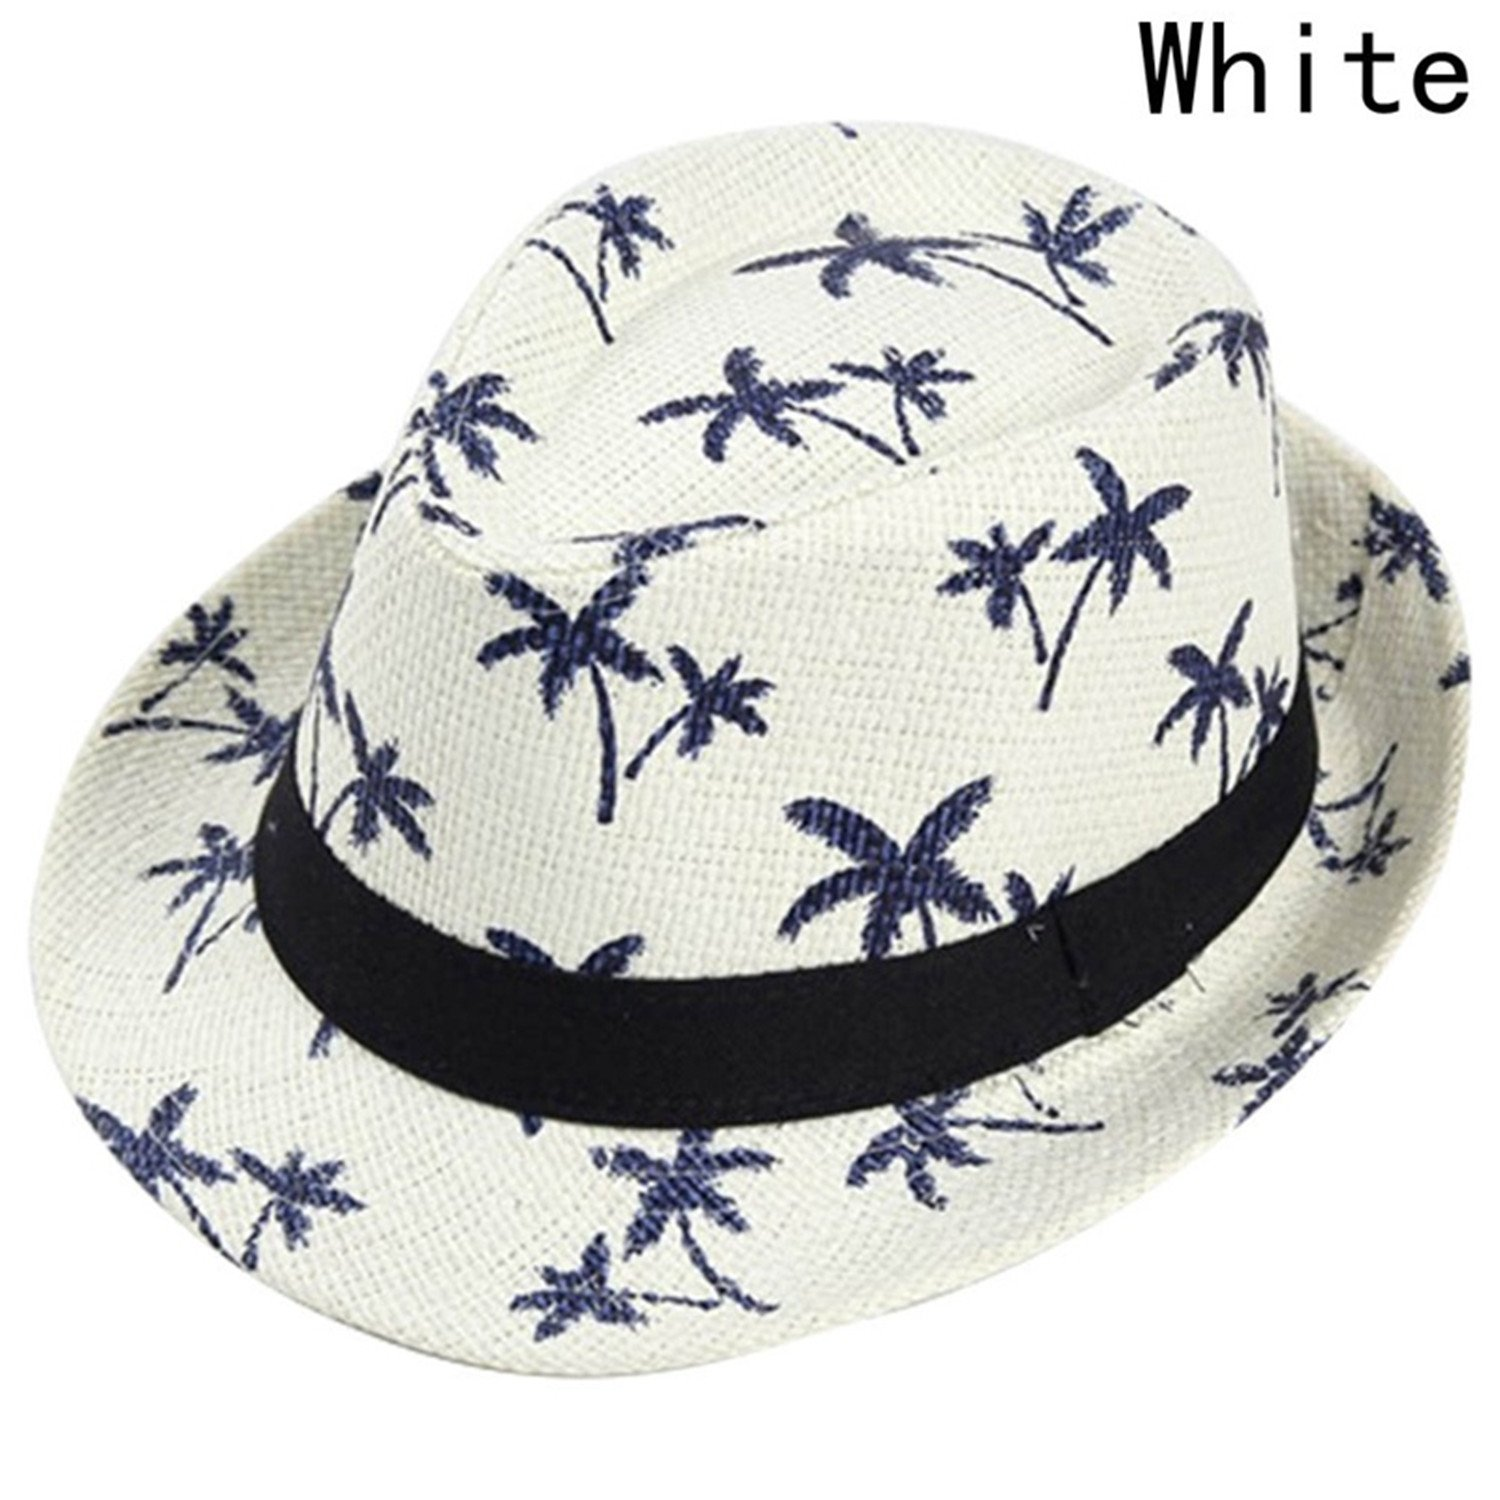 New summer straw sun hat kids beach sun hat trilby panama hat handwork for boy girl children 4 colour wt adult amazon co uk clothing